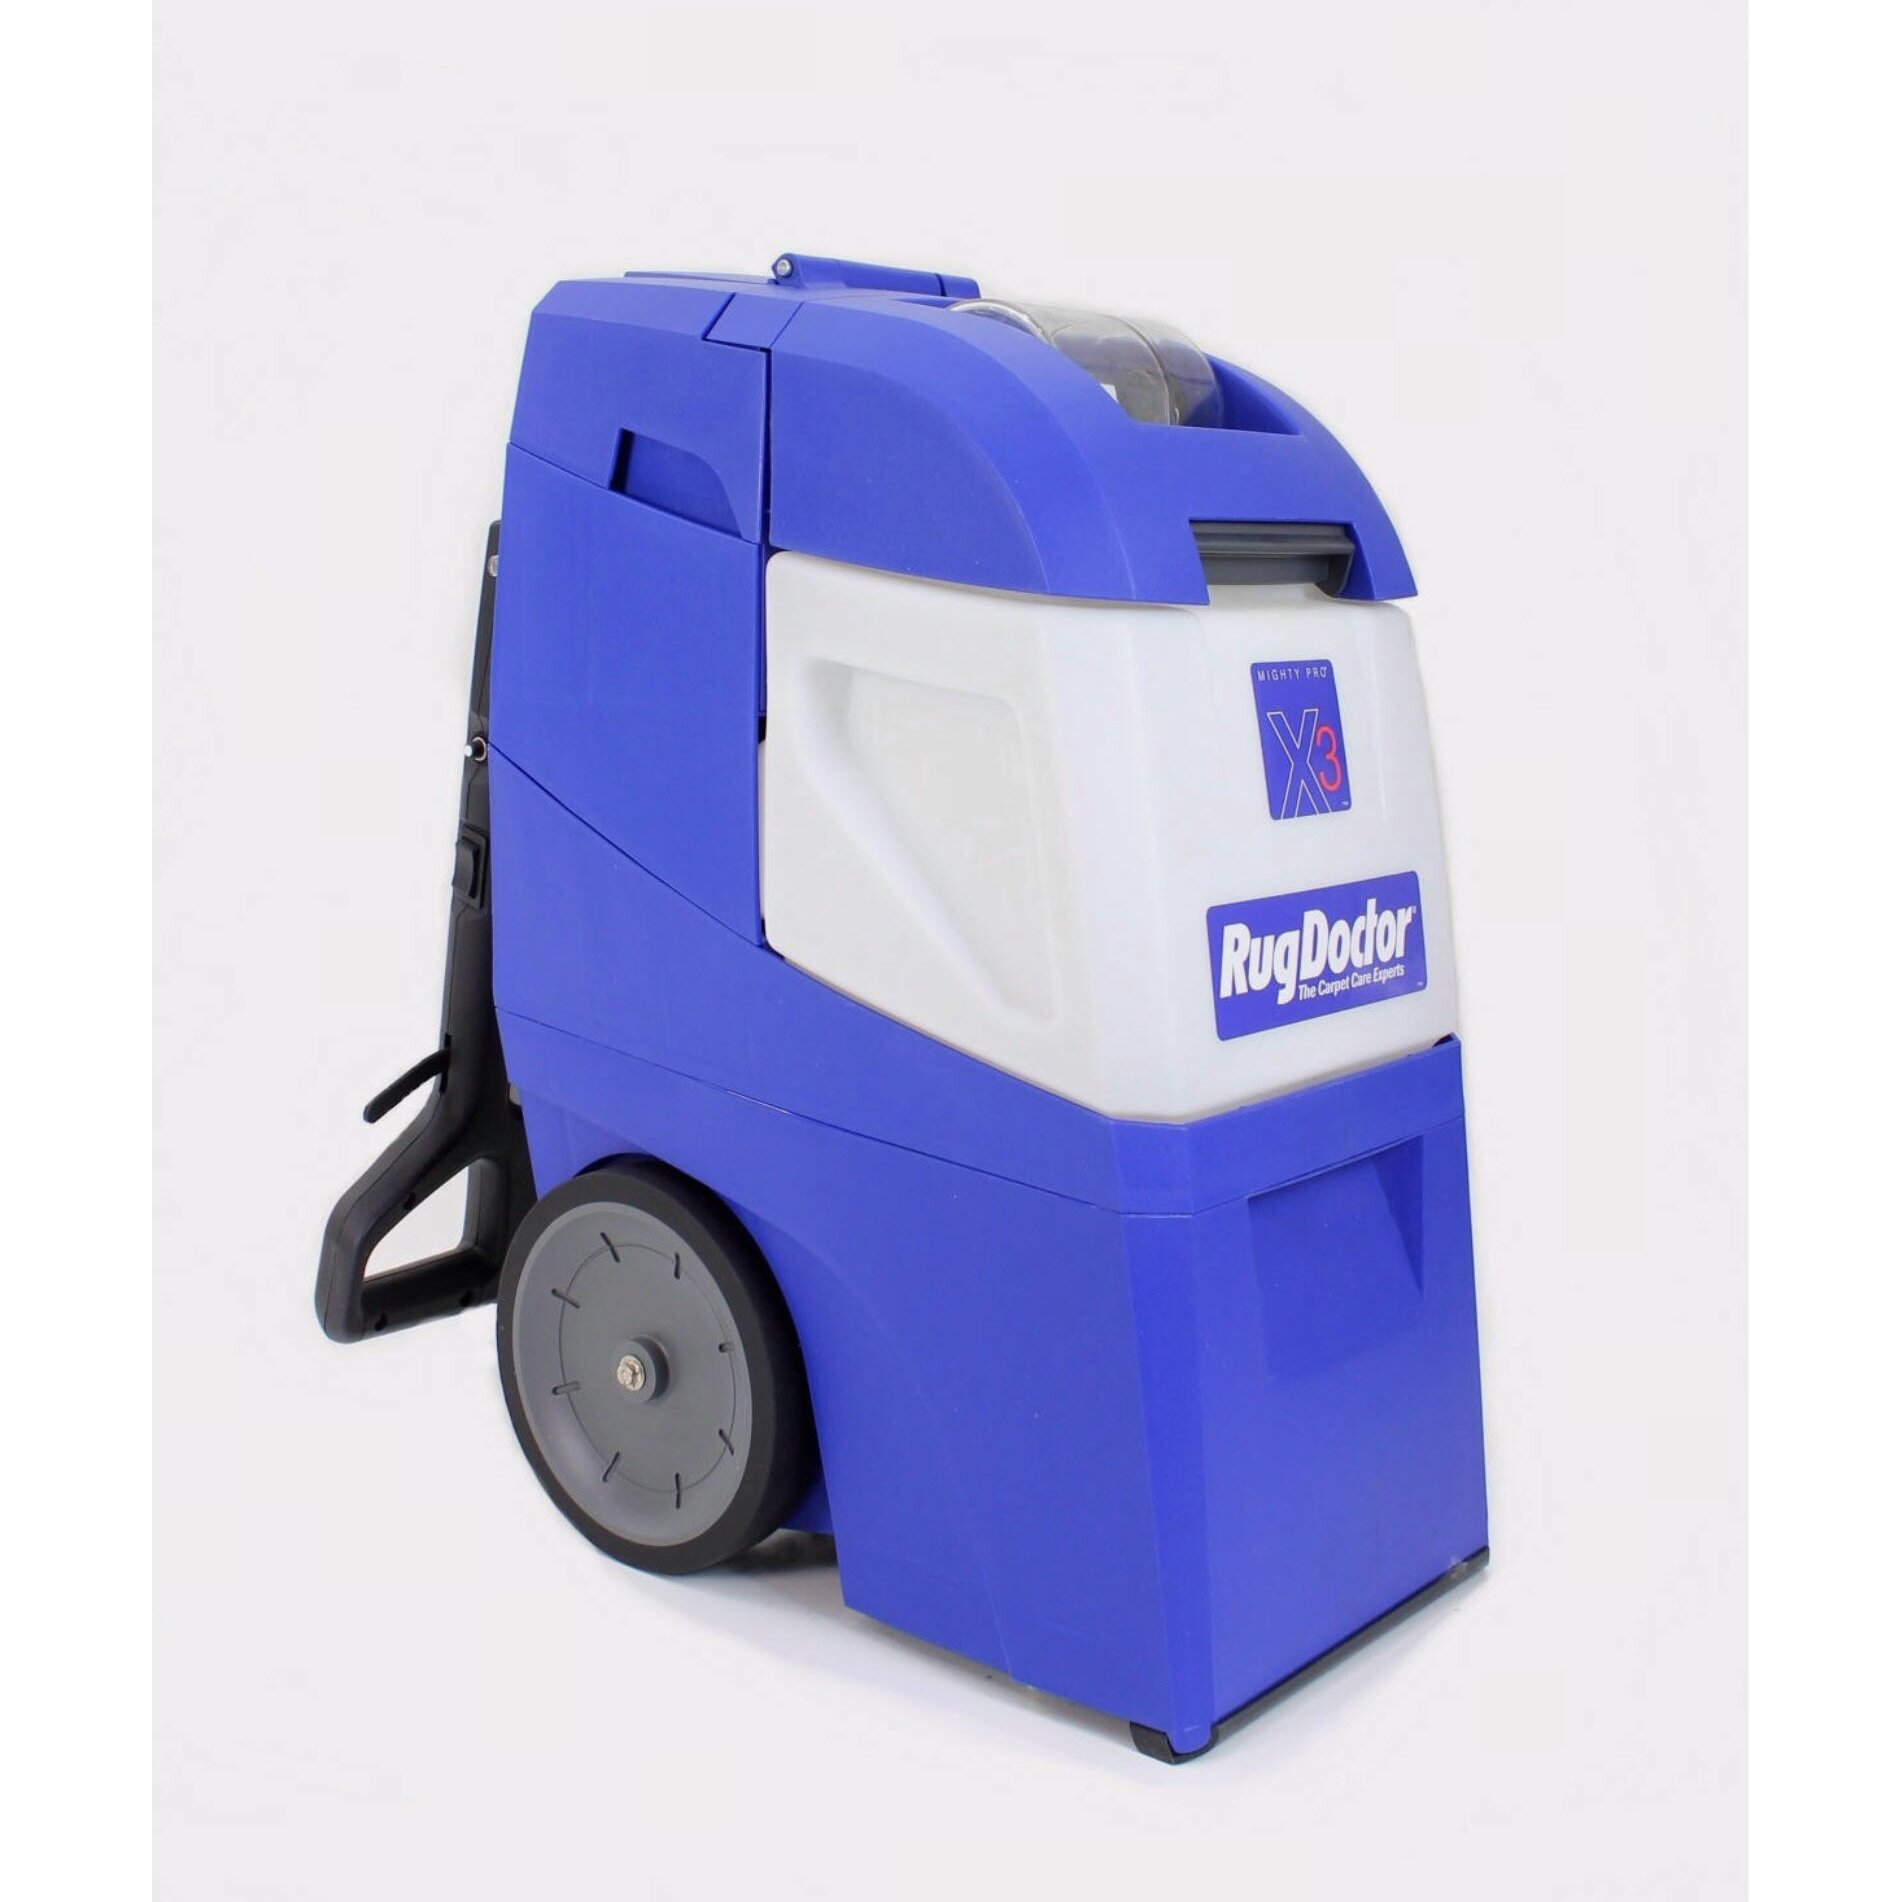 This Rug Doctor Deep Carpet Cleaner model promises professional cleaning results and is much less costly than the commercial-grade Rug Doctor extractor machine. Canadian Visitors: Check Price/Availability at Amazon.